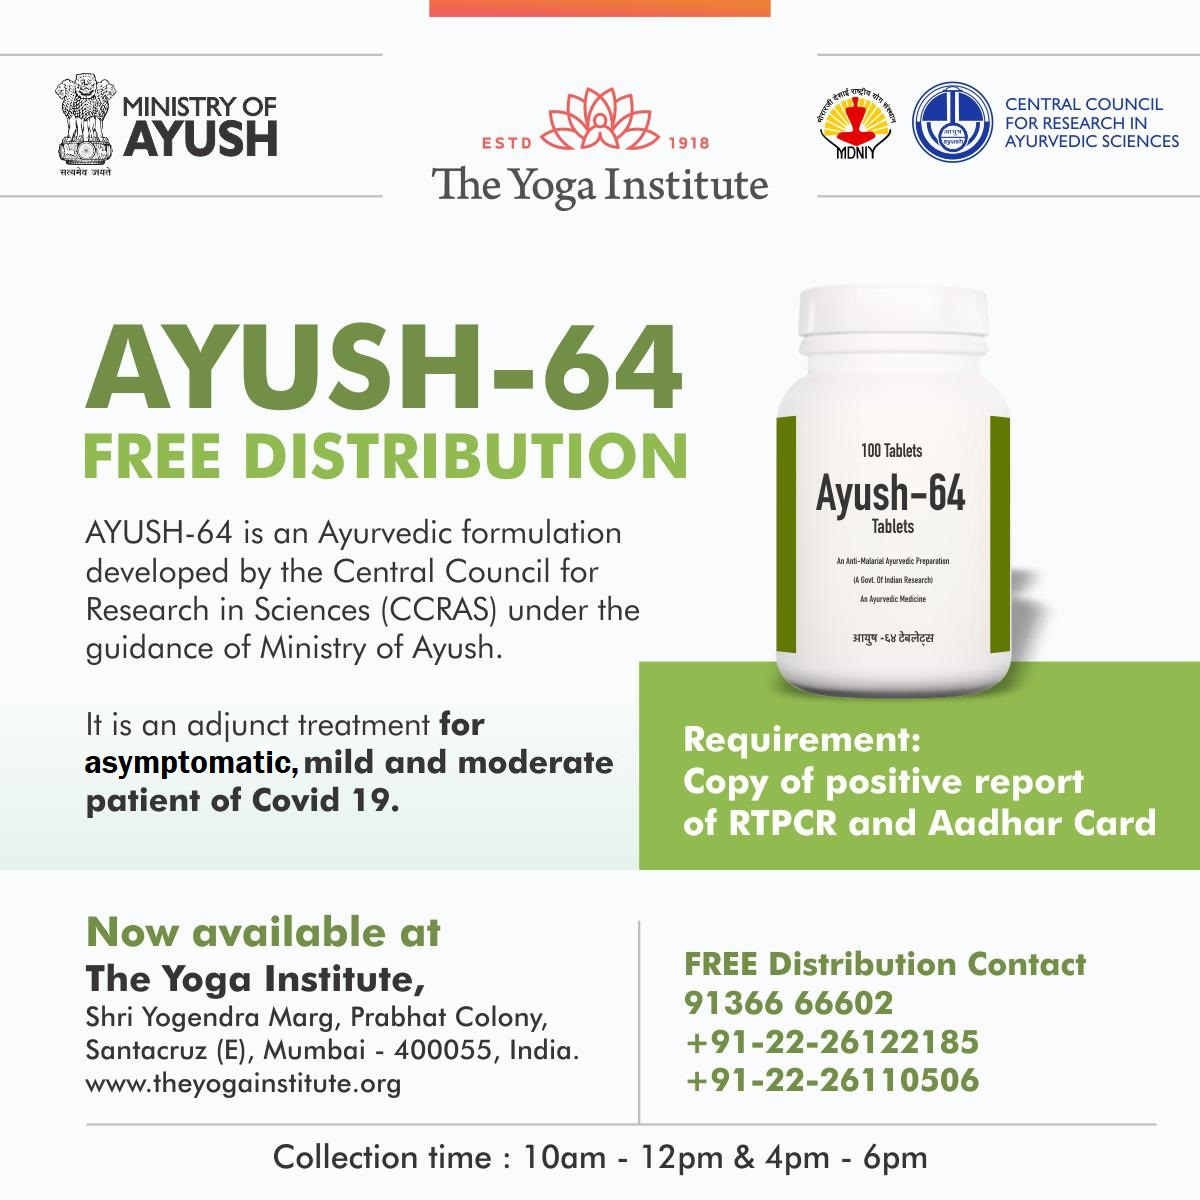 The Yoga Institute Mumbai helping Ministry of Ayush with free distribution of Ayurvedic formulation AYUSH-64 for covid patients